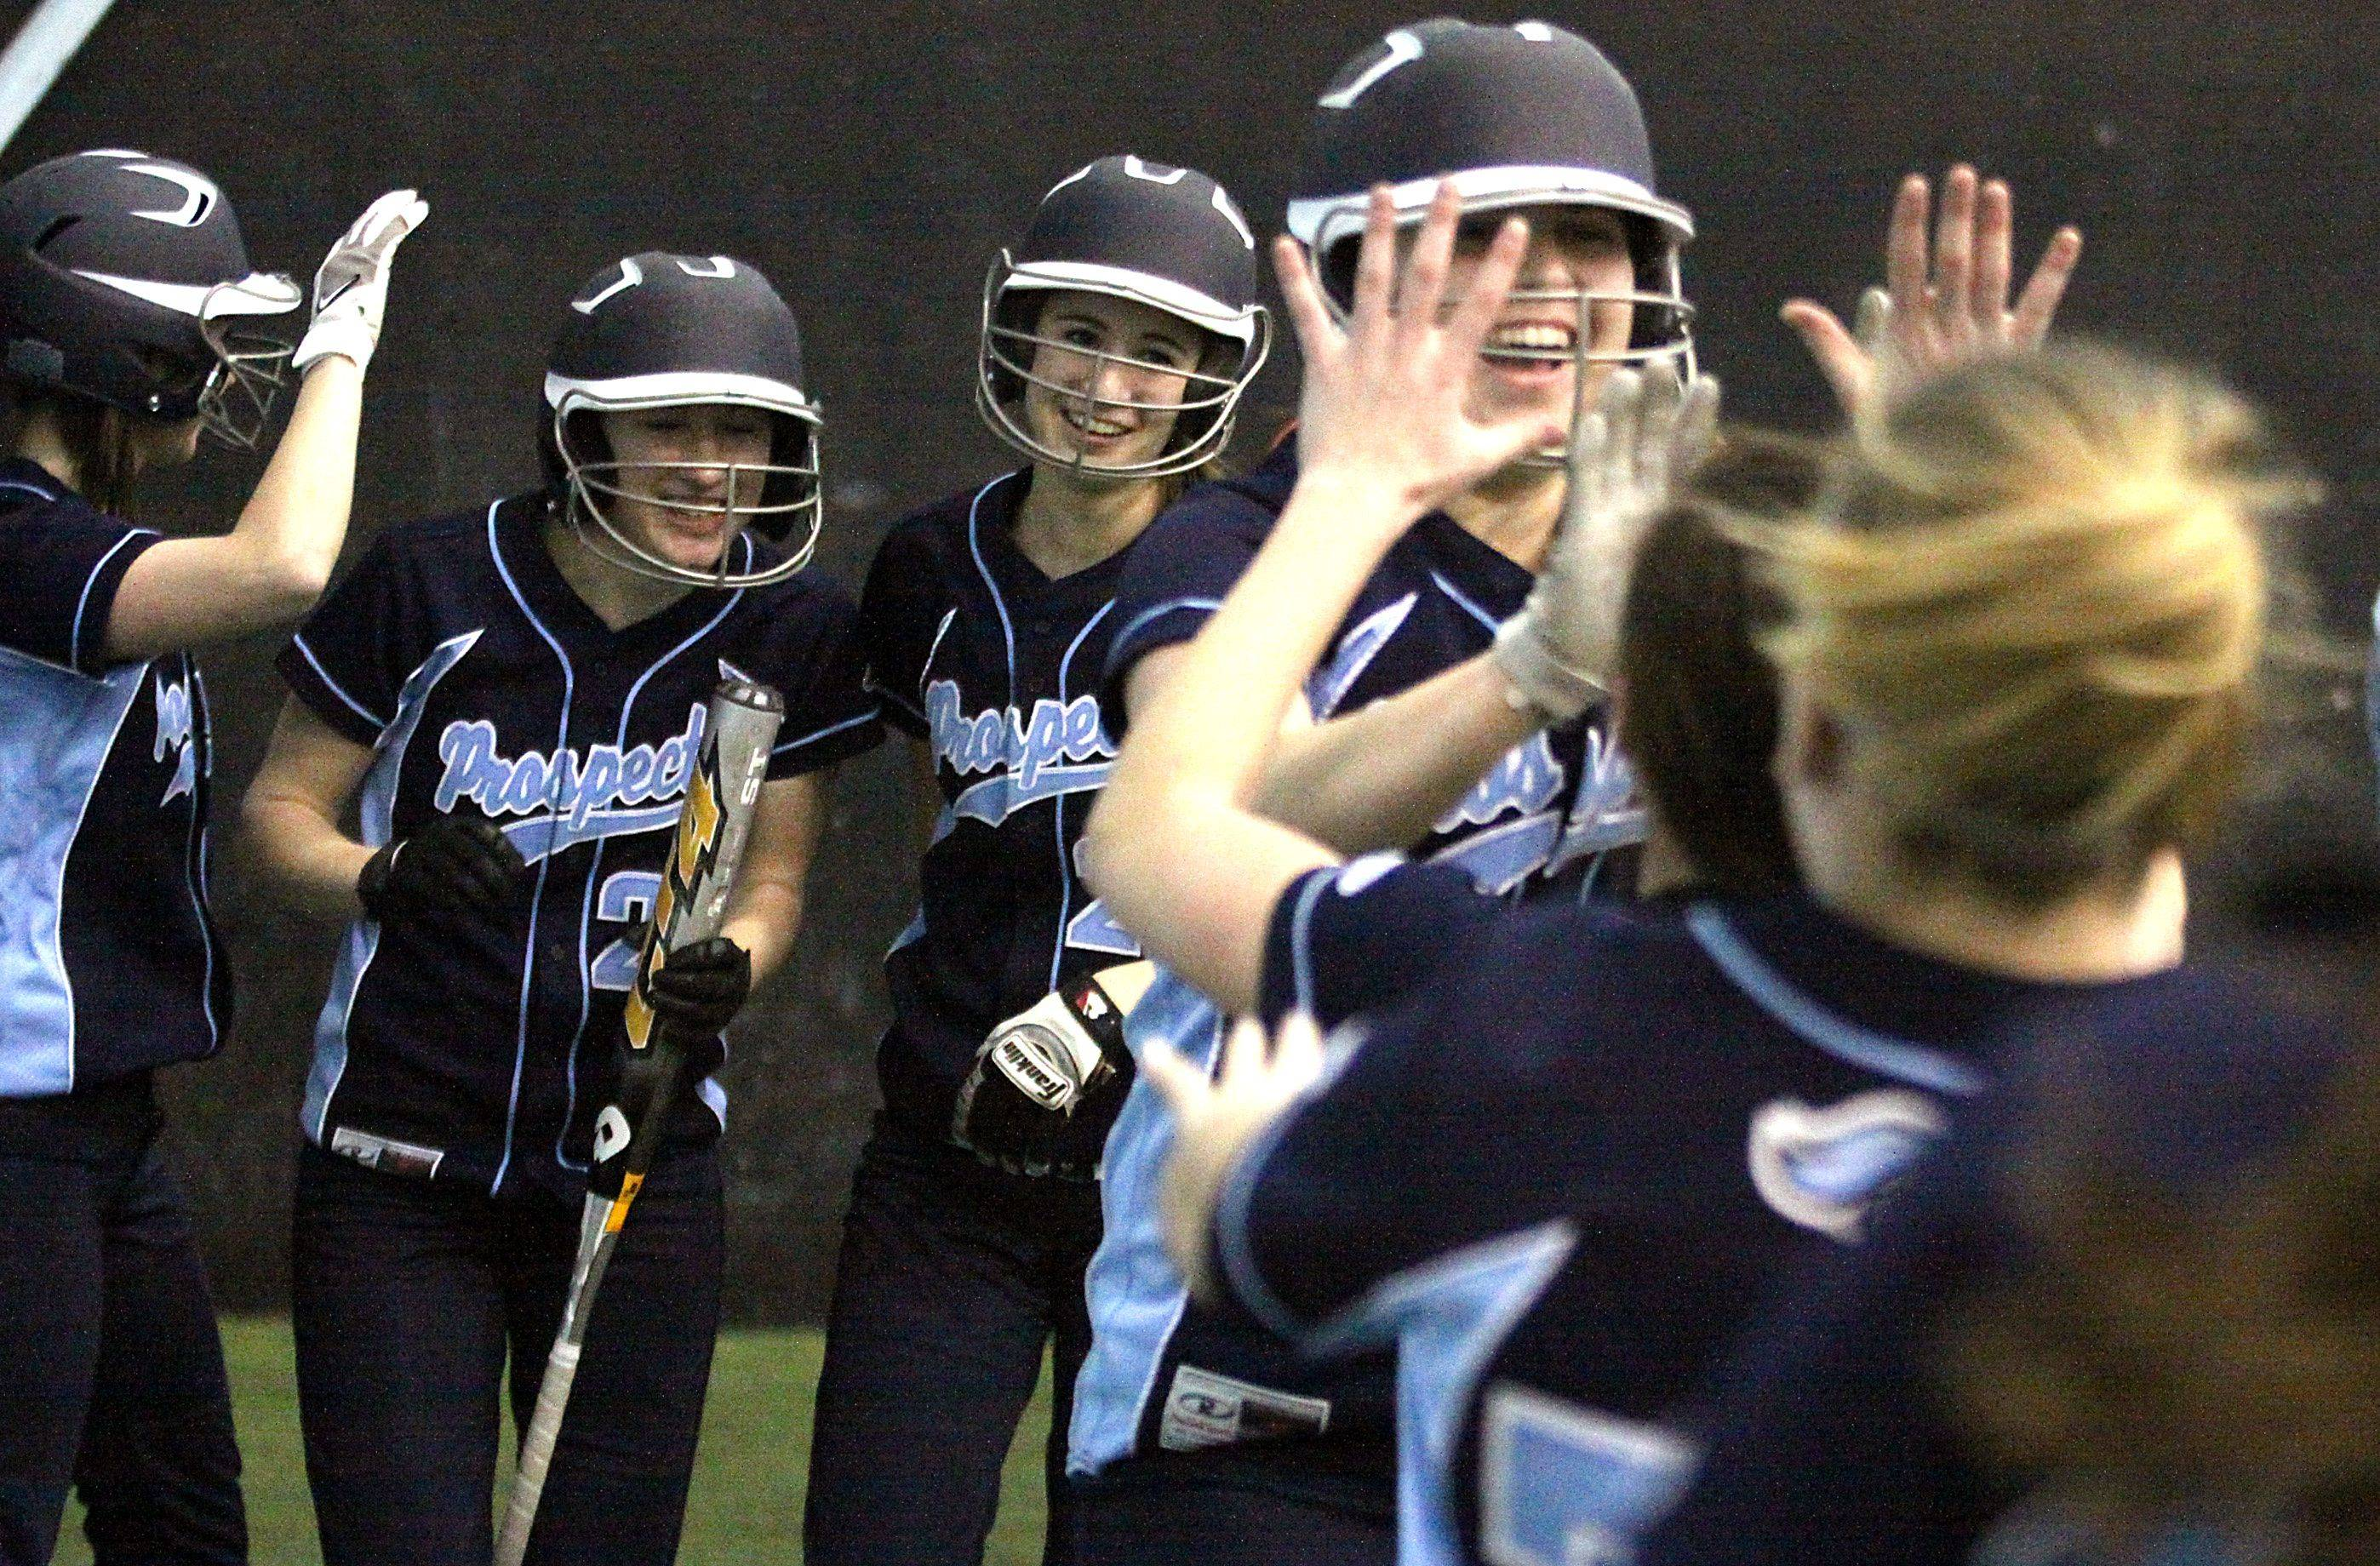 Prospect's Michele Molini, from left, Amy Graham and Mary Styzek of Prospect watch as teammate Nicole Surico is congratulated after a home run against Libertyville during Monday's game at the Sports Center in Schaumburg.